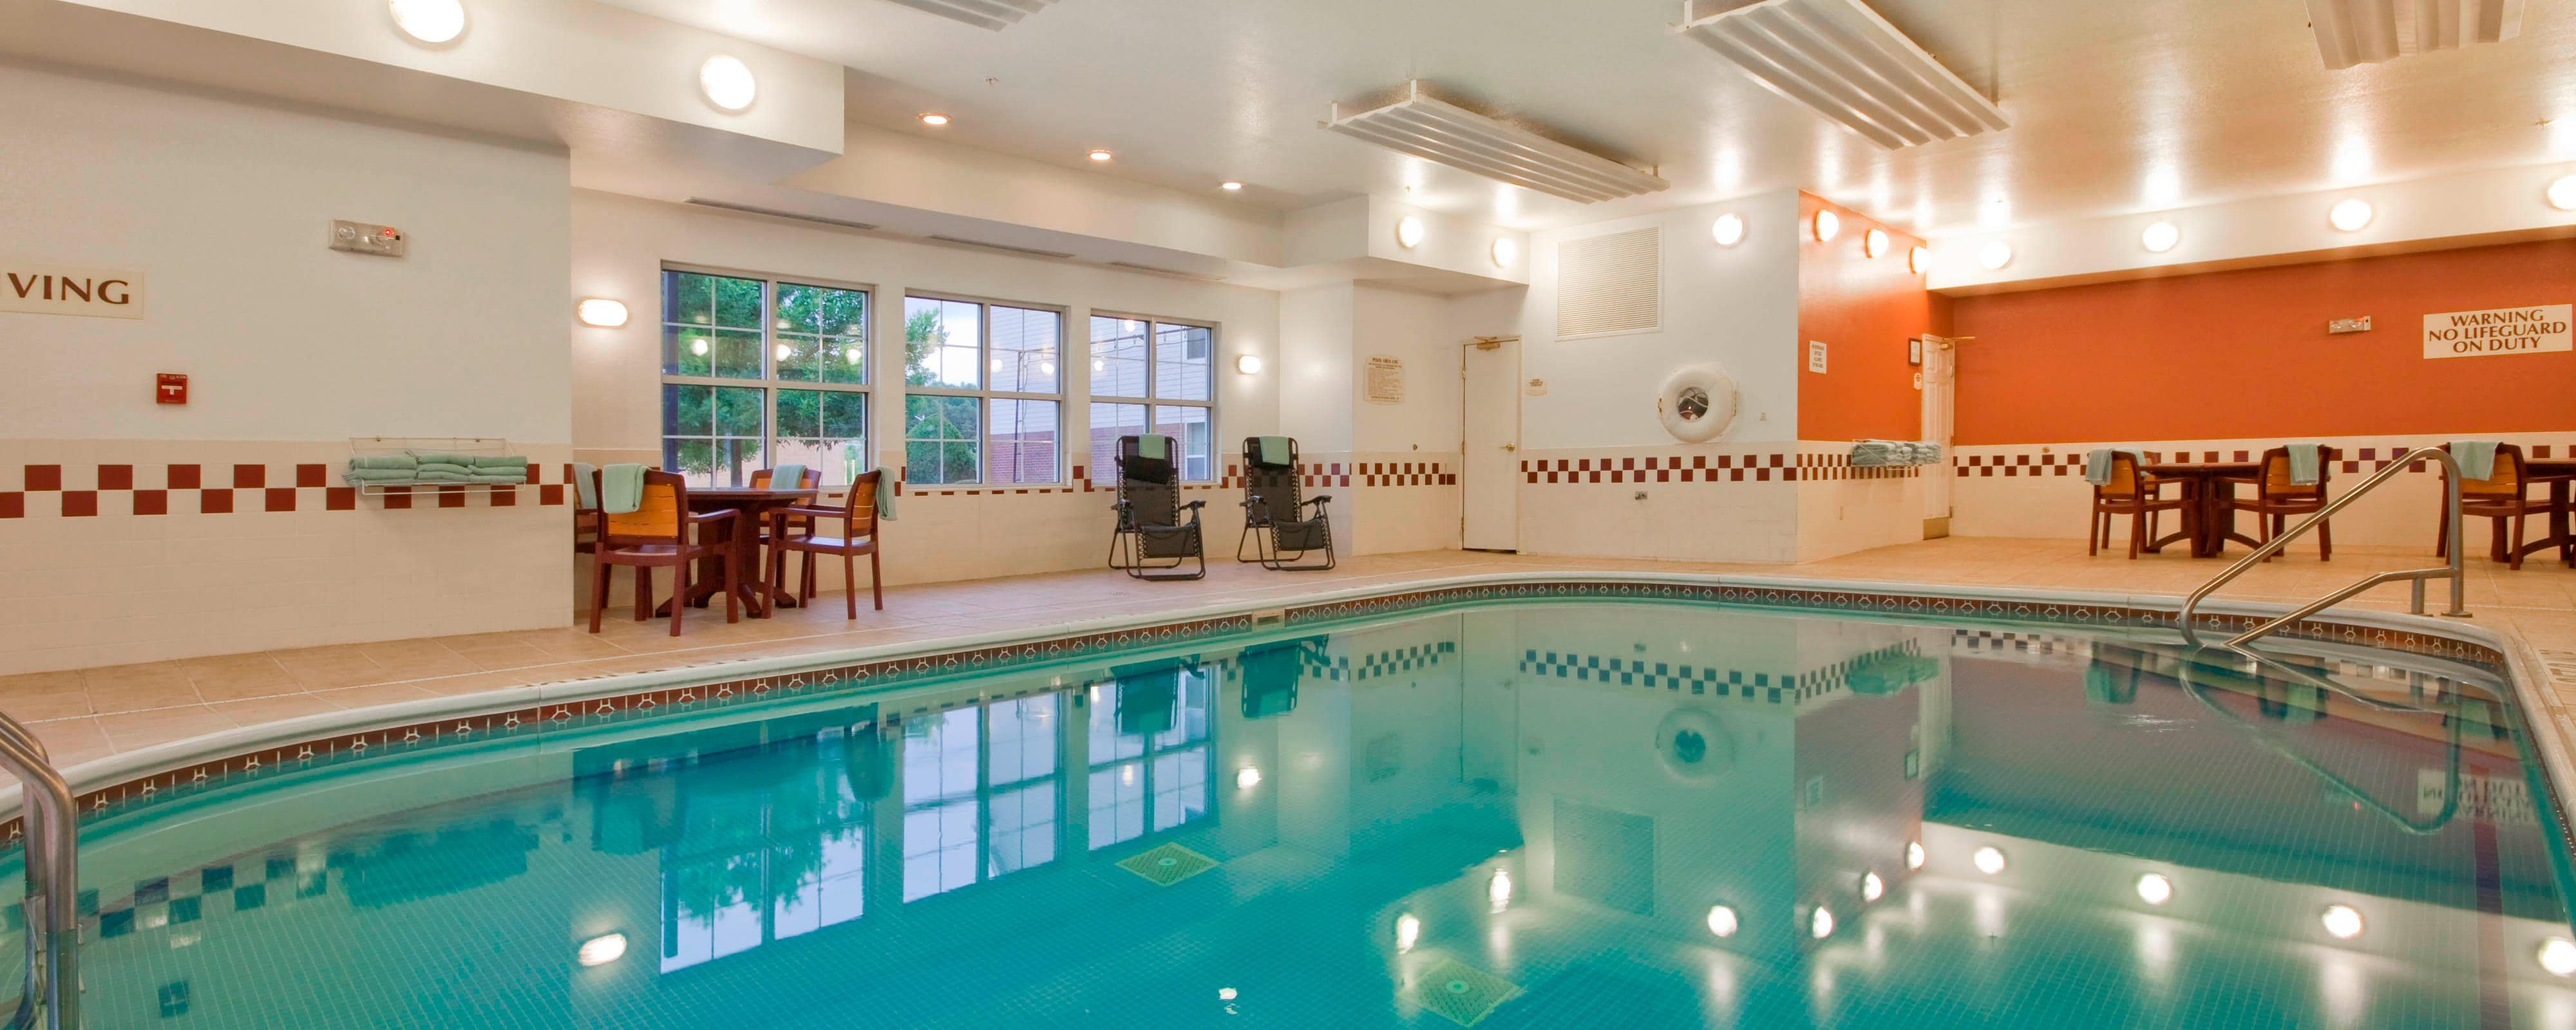 Scranton Pennsylvania Hotel Indoor Pool